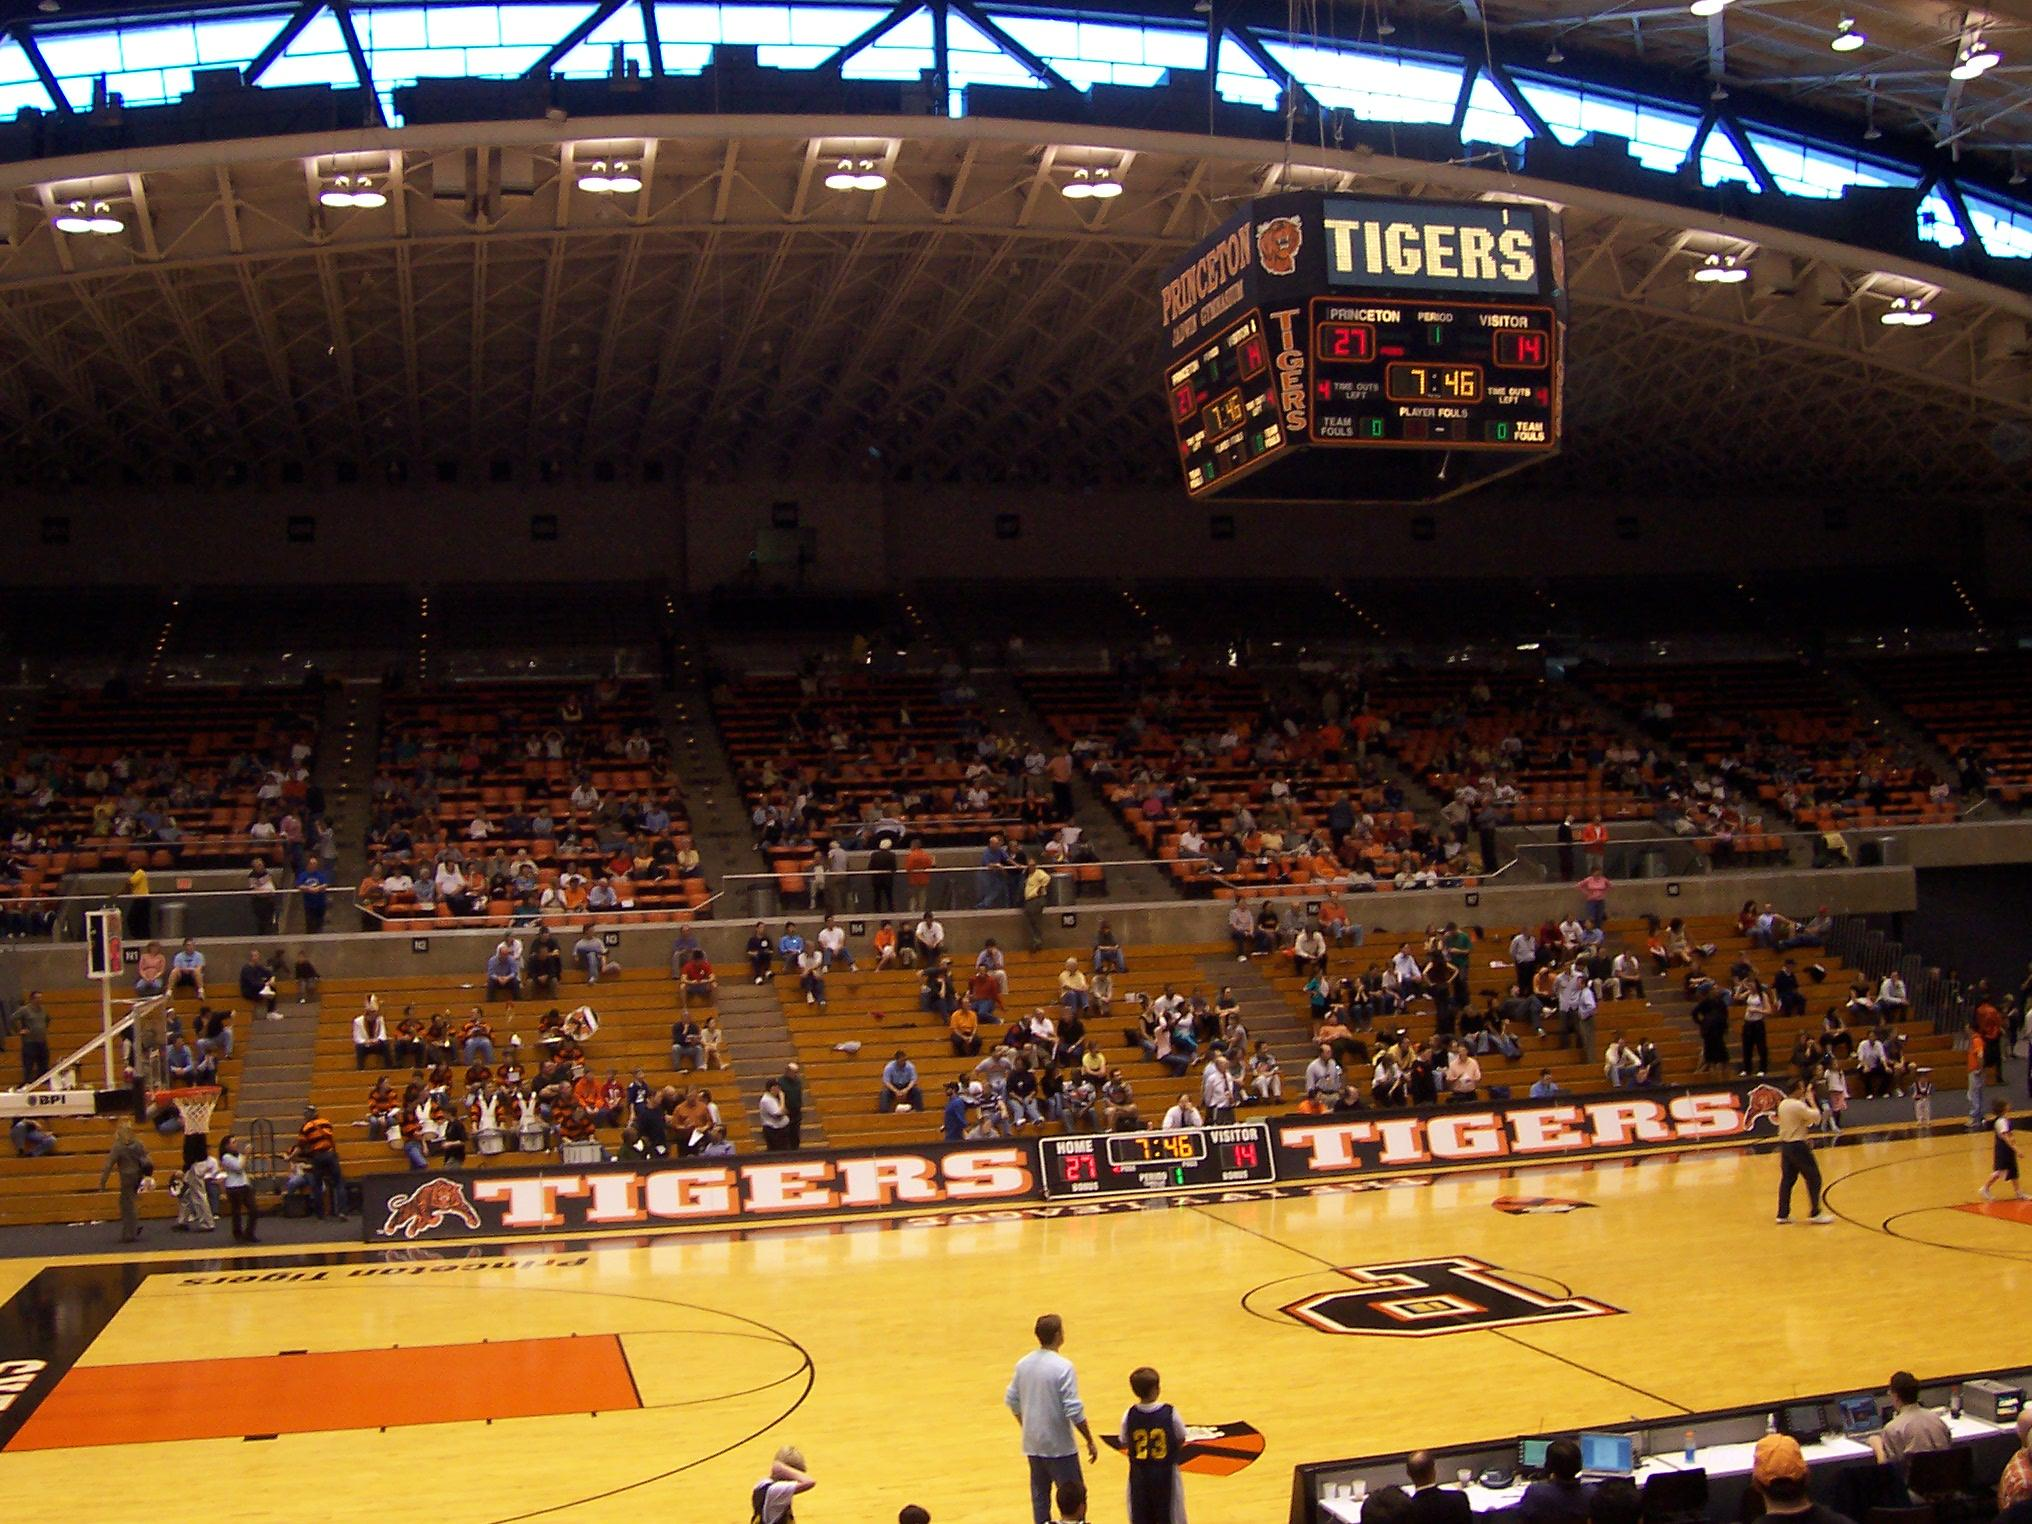 44 Jadwin Gymnasium 171 Stadium And Arena Visits